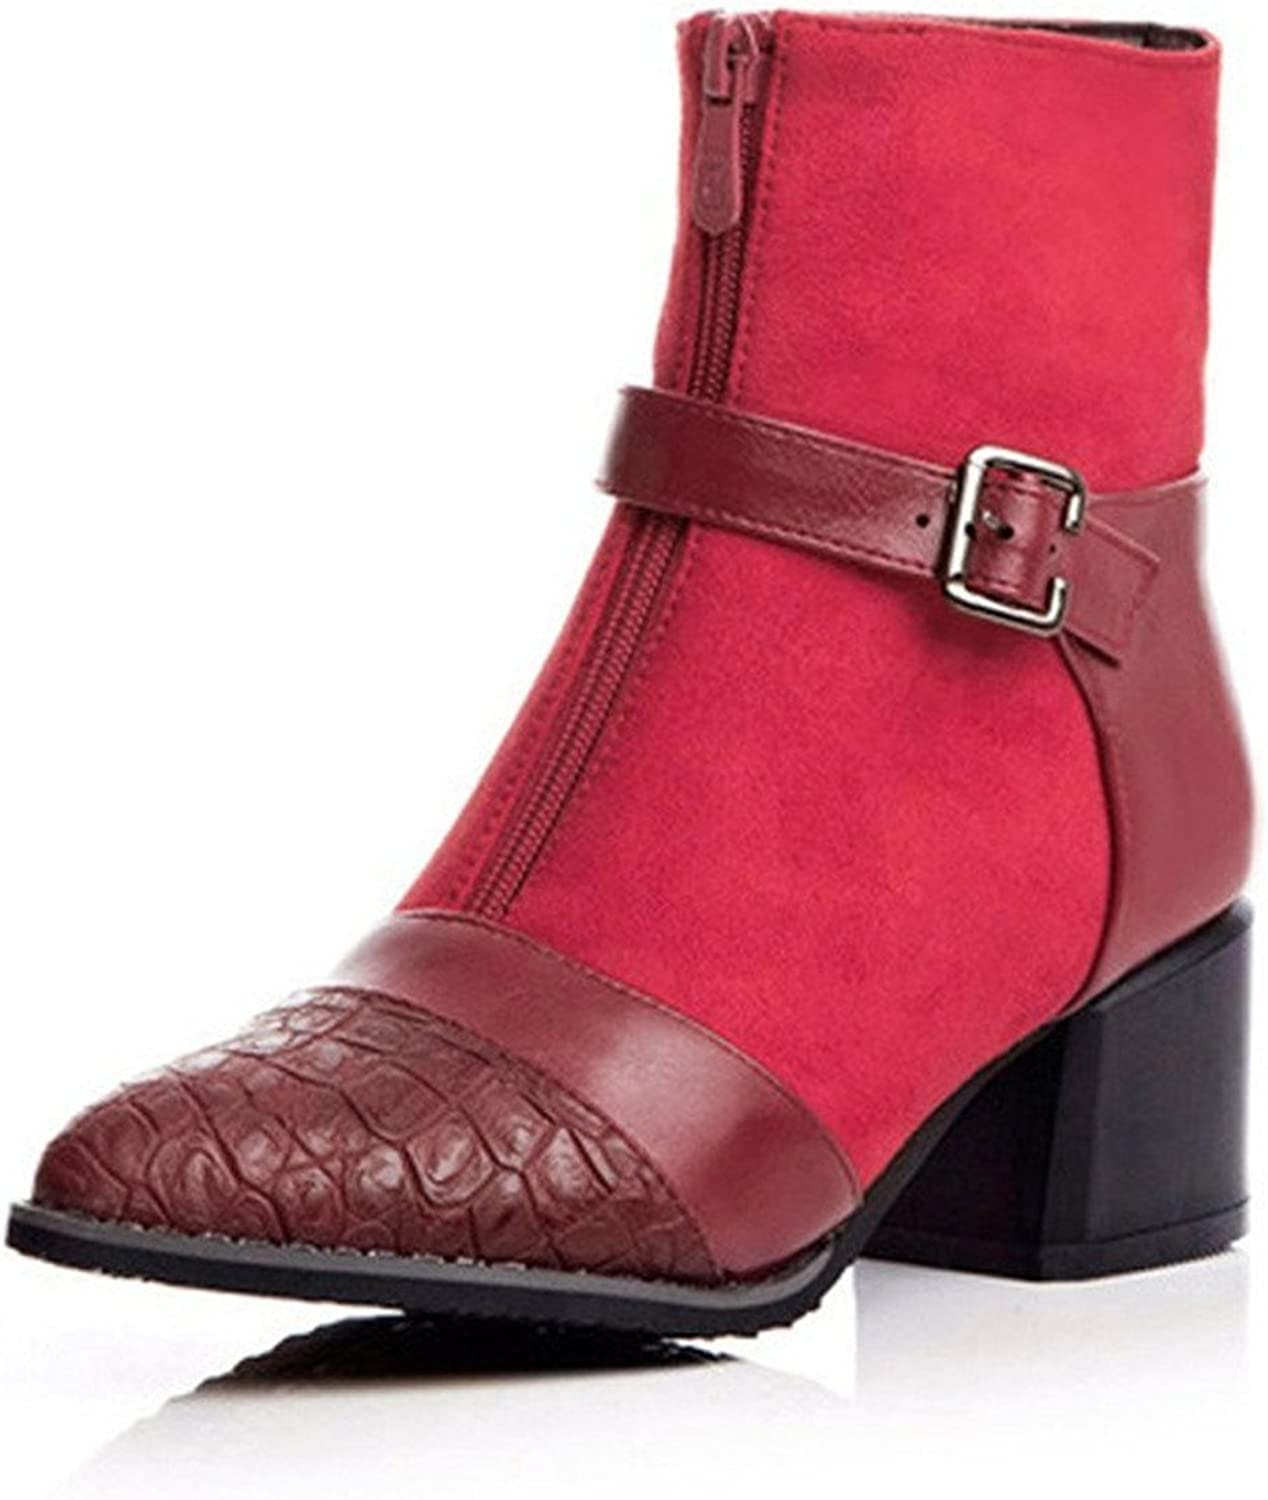 Also Easy Stylish Women's Retro Buckle and Zip Pointed-Toe Chunky Kitten Heel Short Boots Unique Style